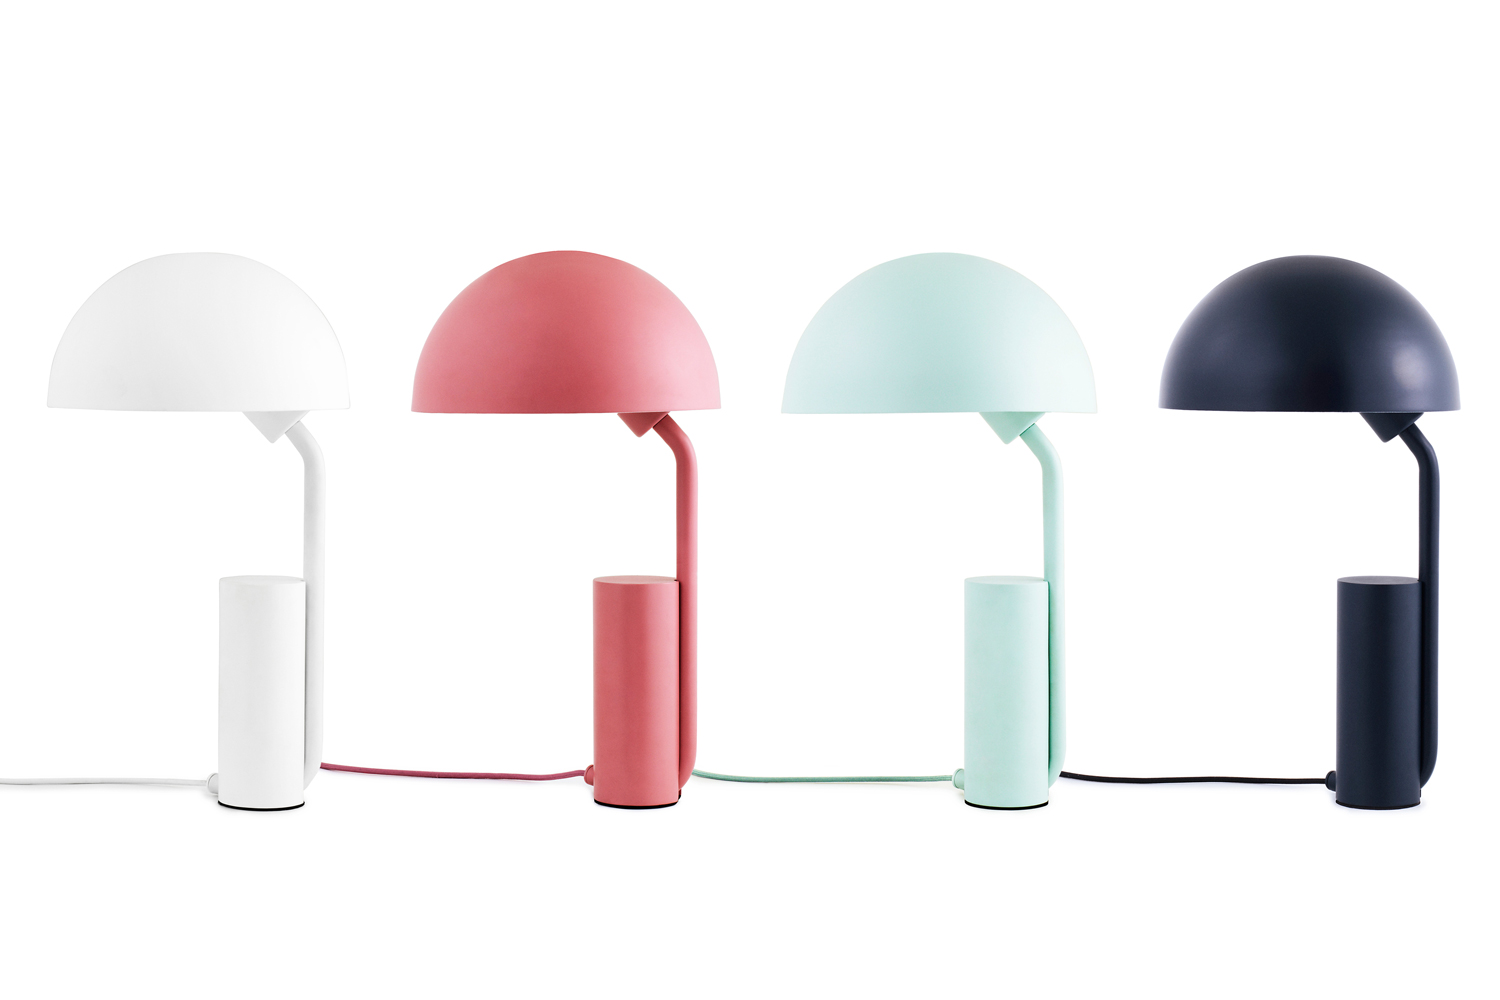 Cap Table Lamp by Kaschkasch for Normann Copenhagen at Stockholm Design Week 2015 | Yellowtrace